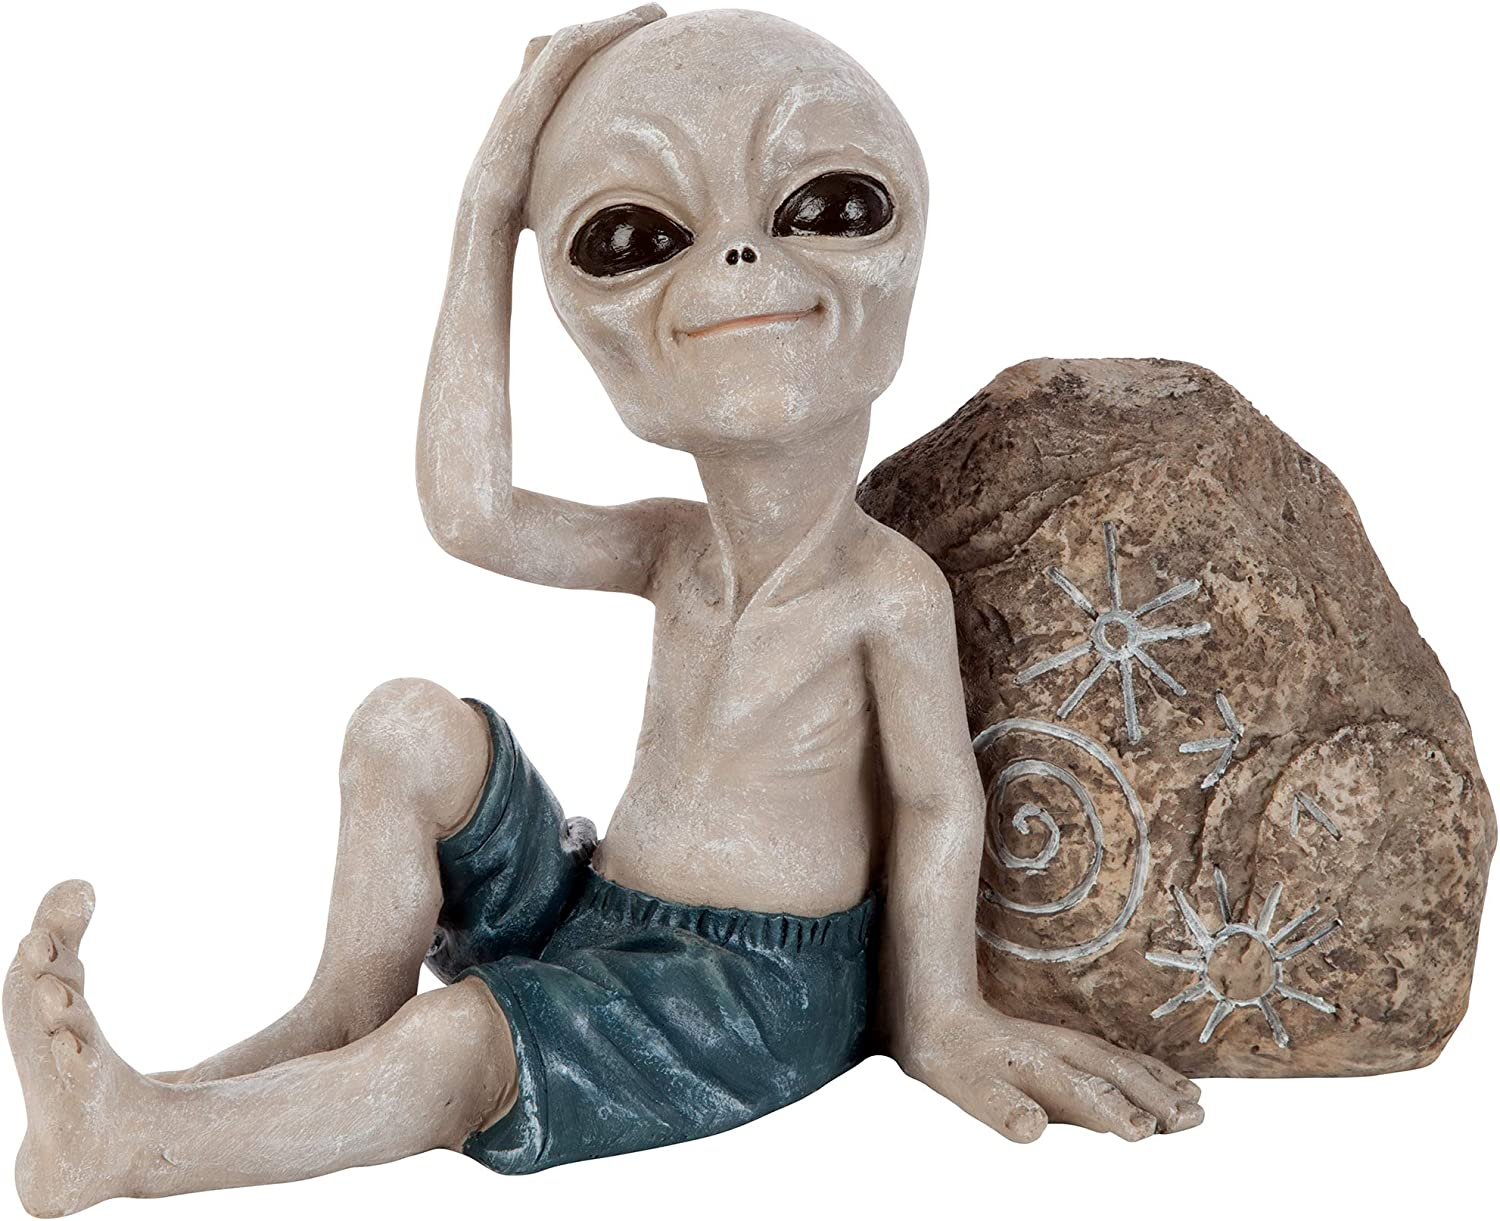 Design Toscano LY612243 Surfer Dude Out-of-This-World Alien Statue, Small-Chilling, Full Color